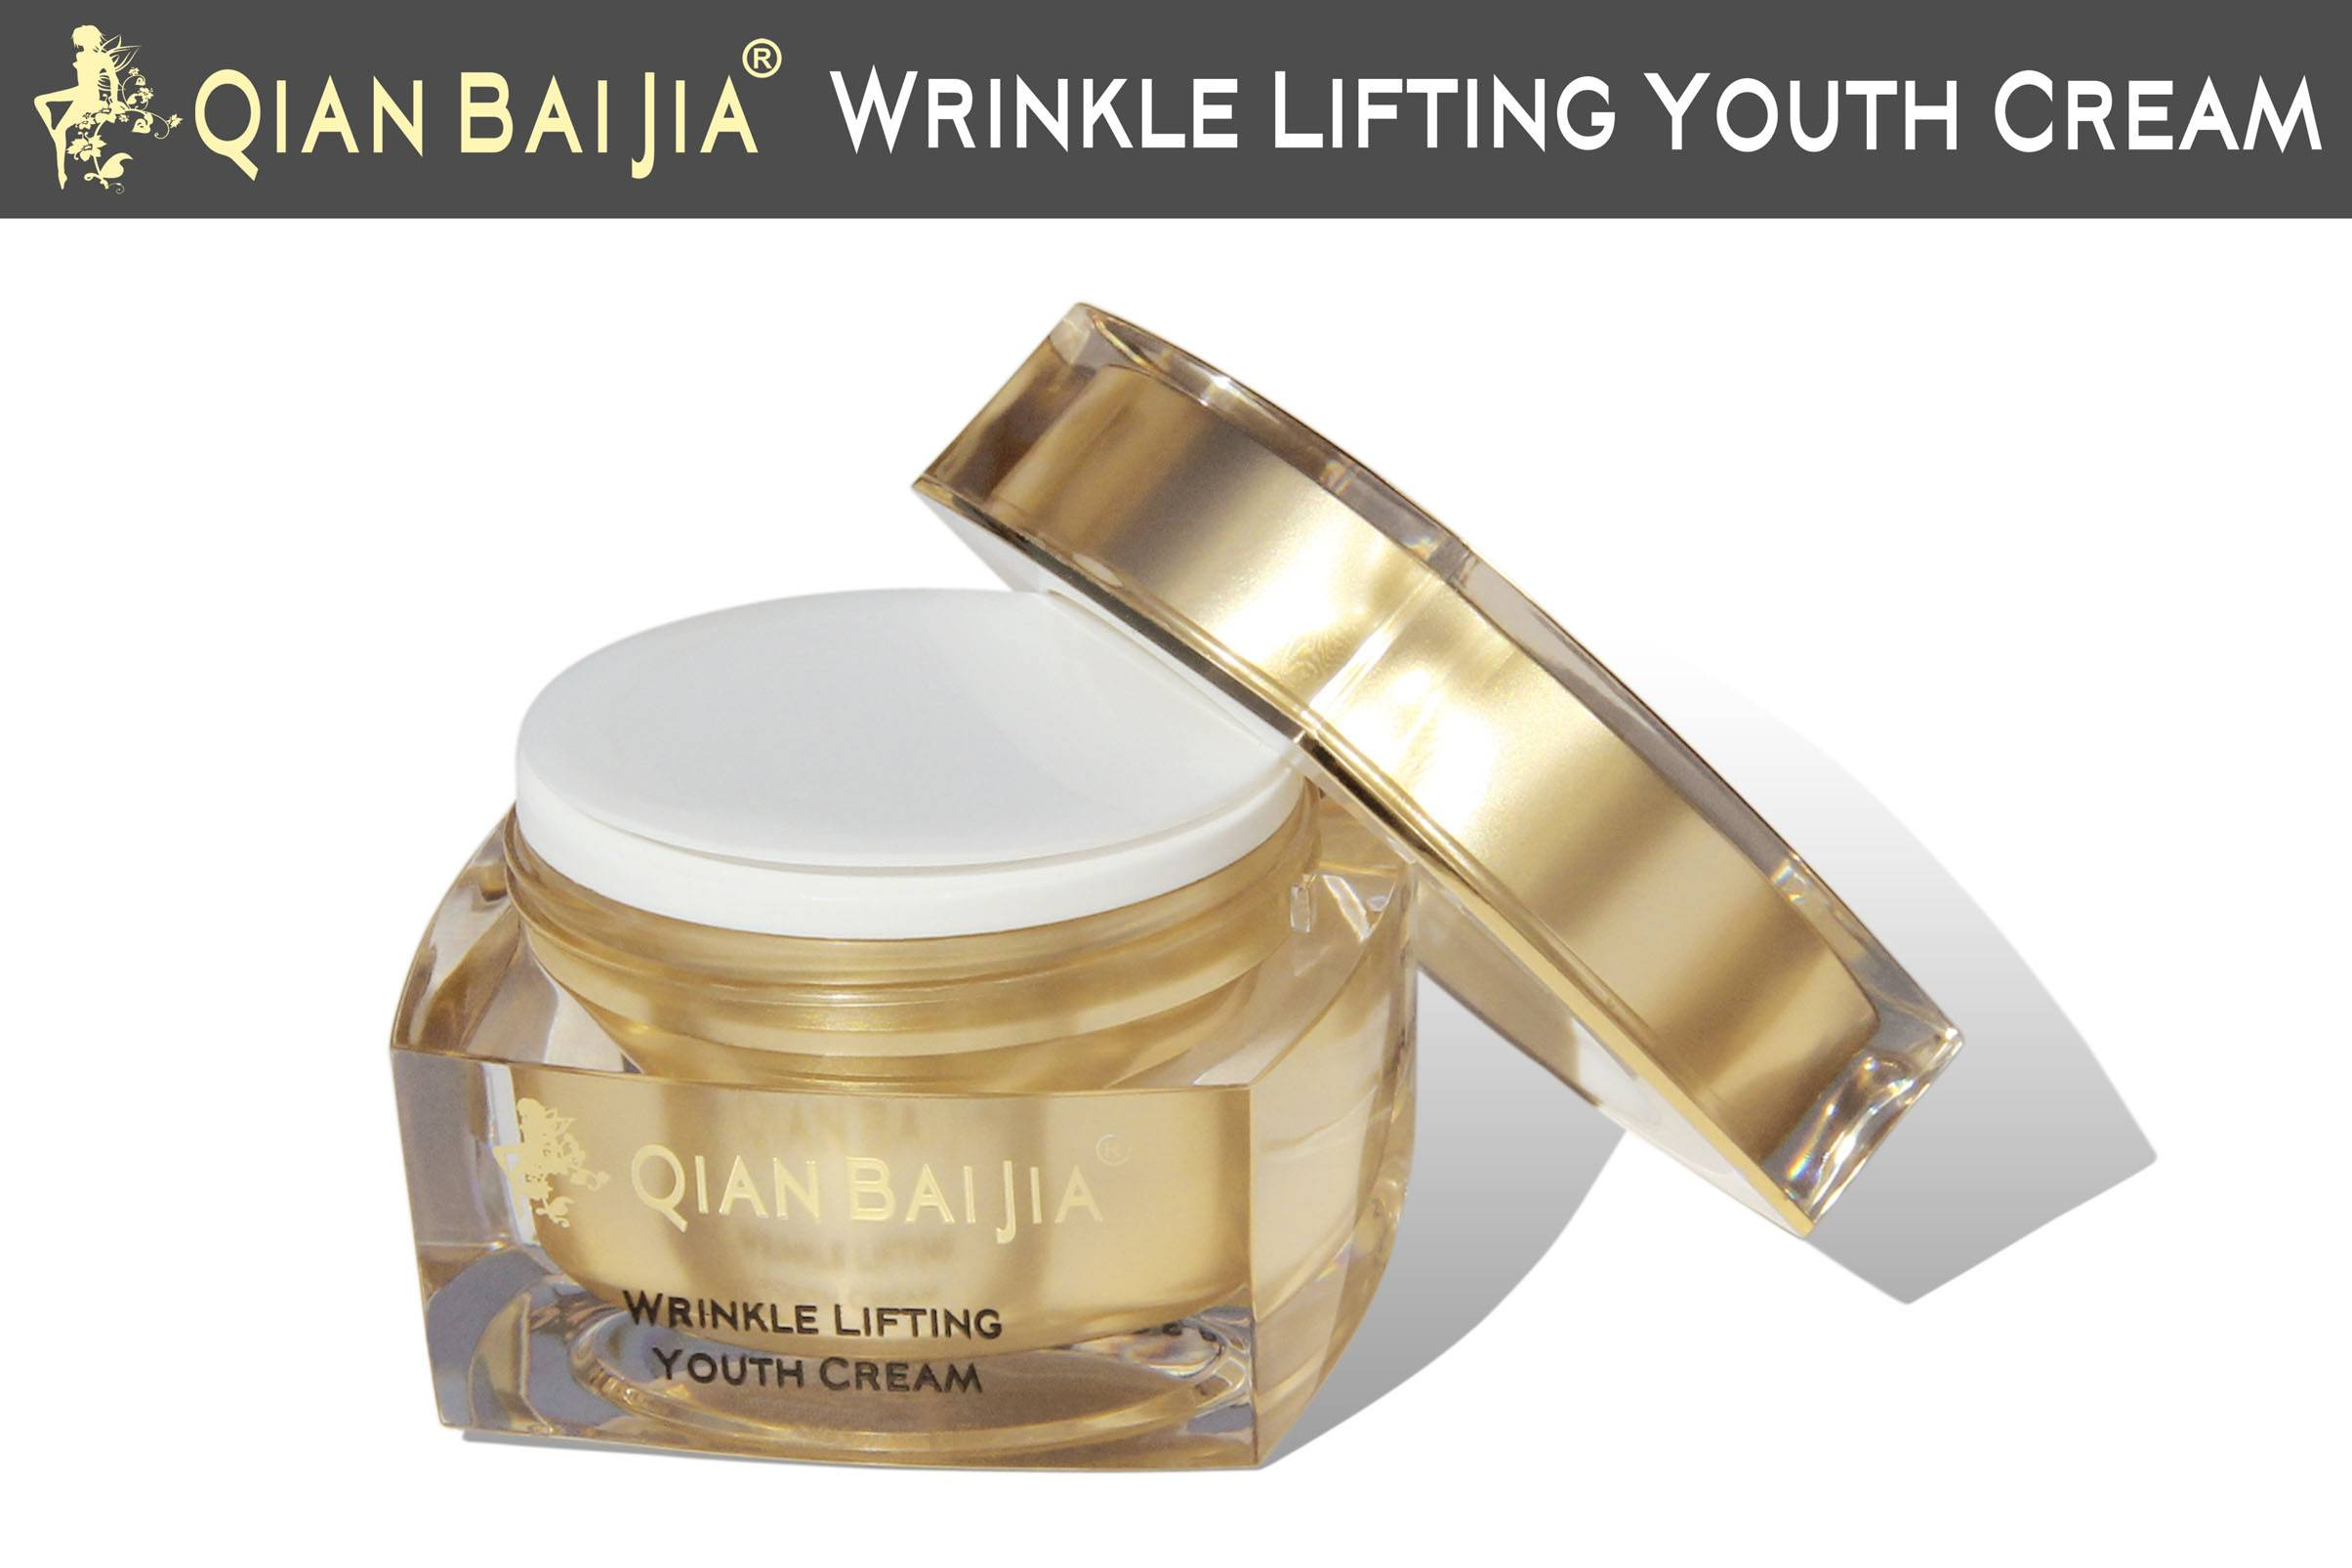 QianBaiJia Wrinkle Lifting Youth Cream